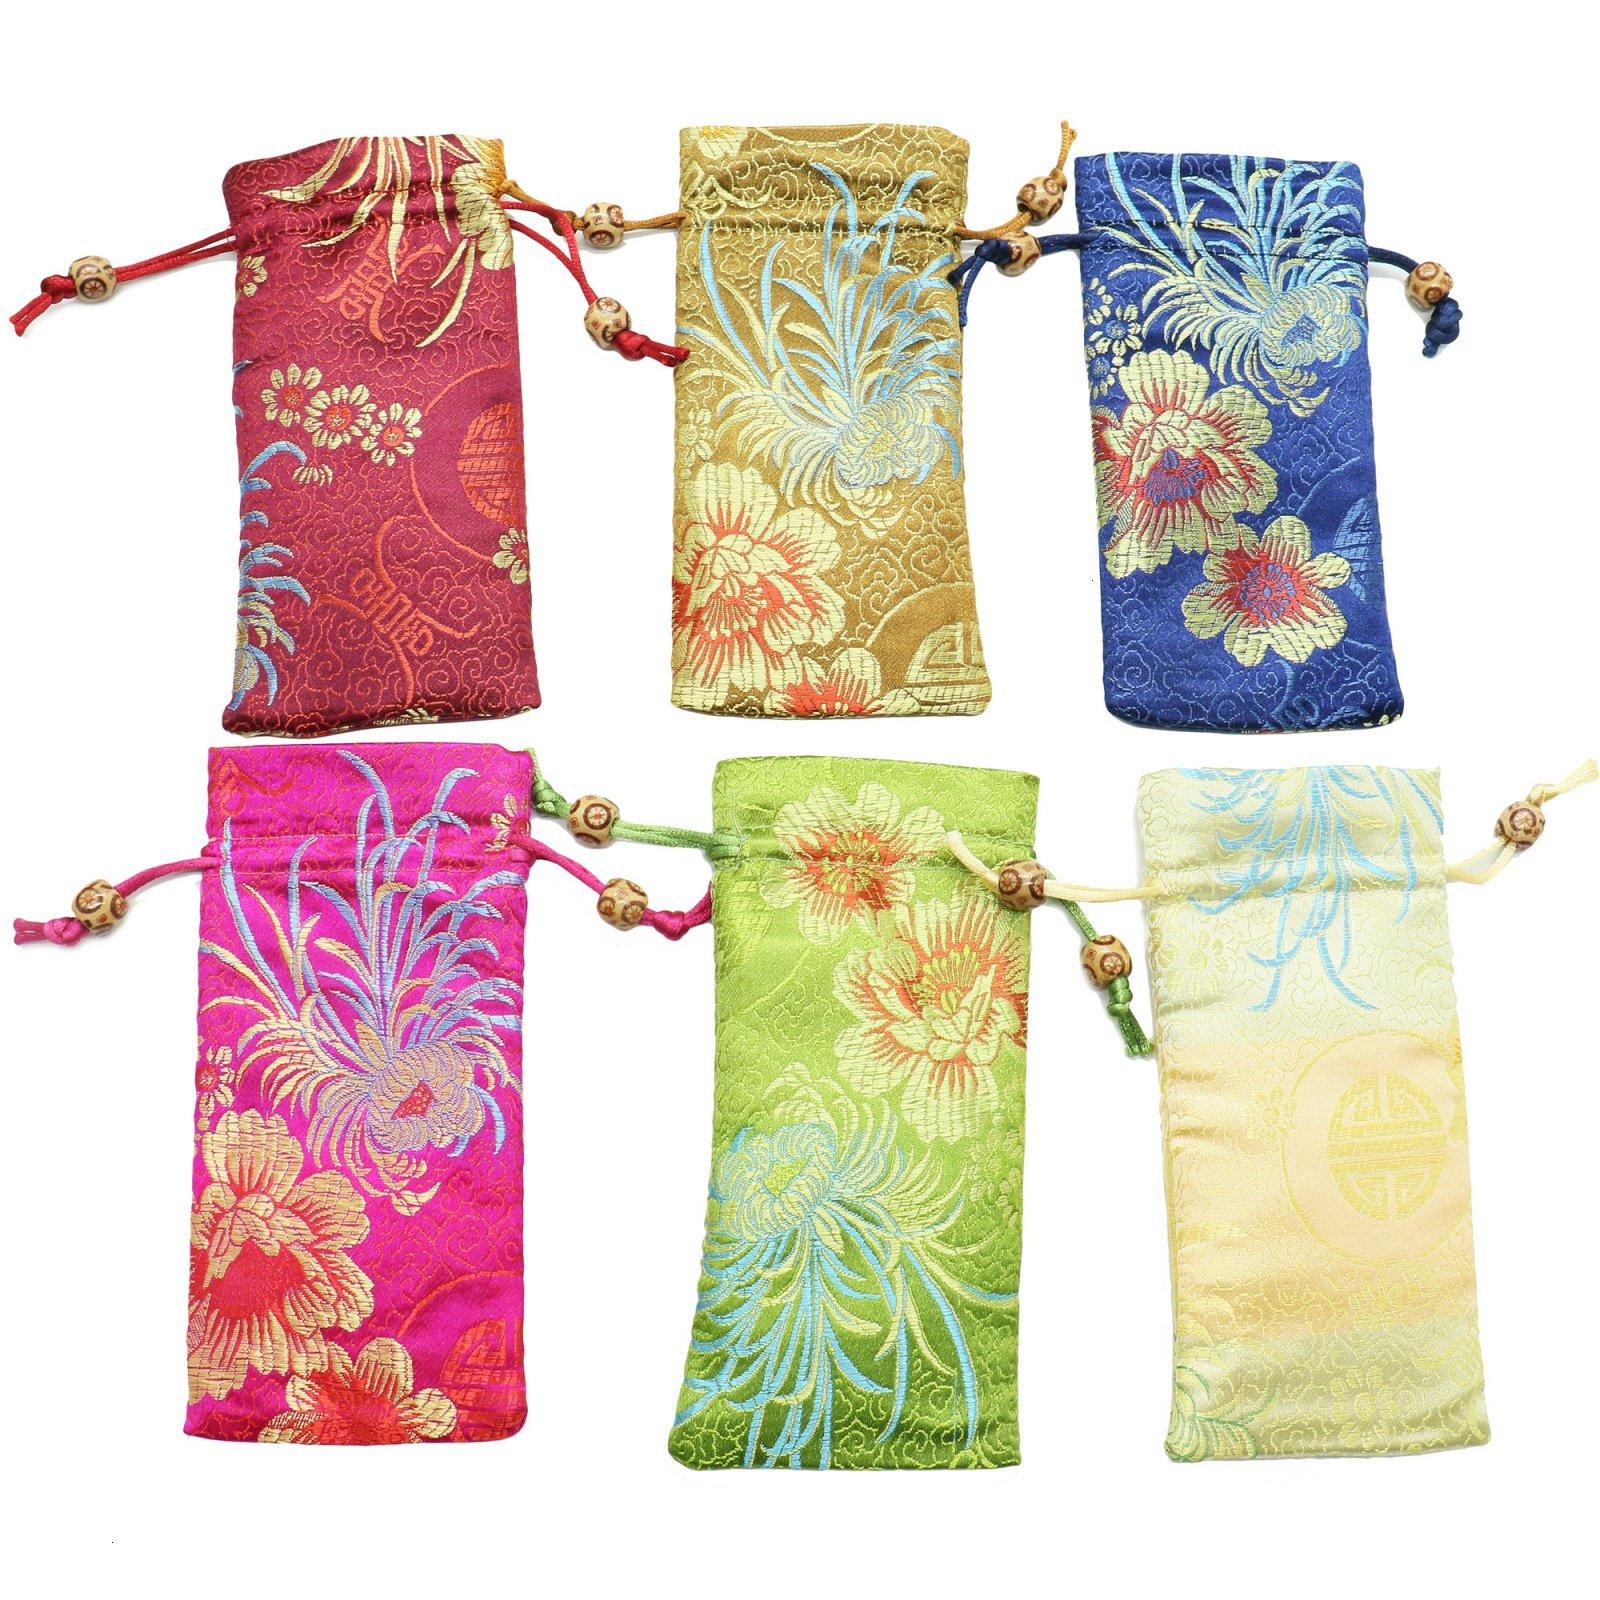 MAISHO Silk Brocade Pouch Bags, 6pcs Embossed Chinese Bead Drawstring Eyeglass Case Gift Bag